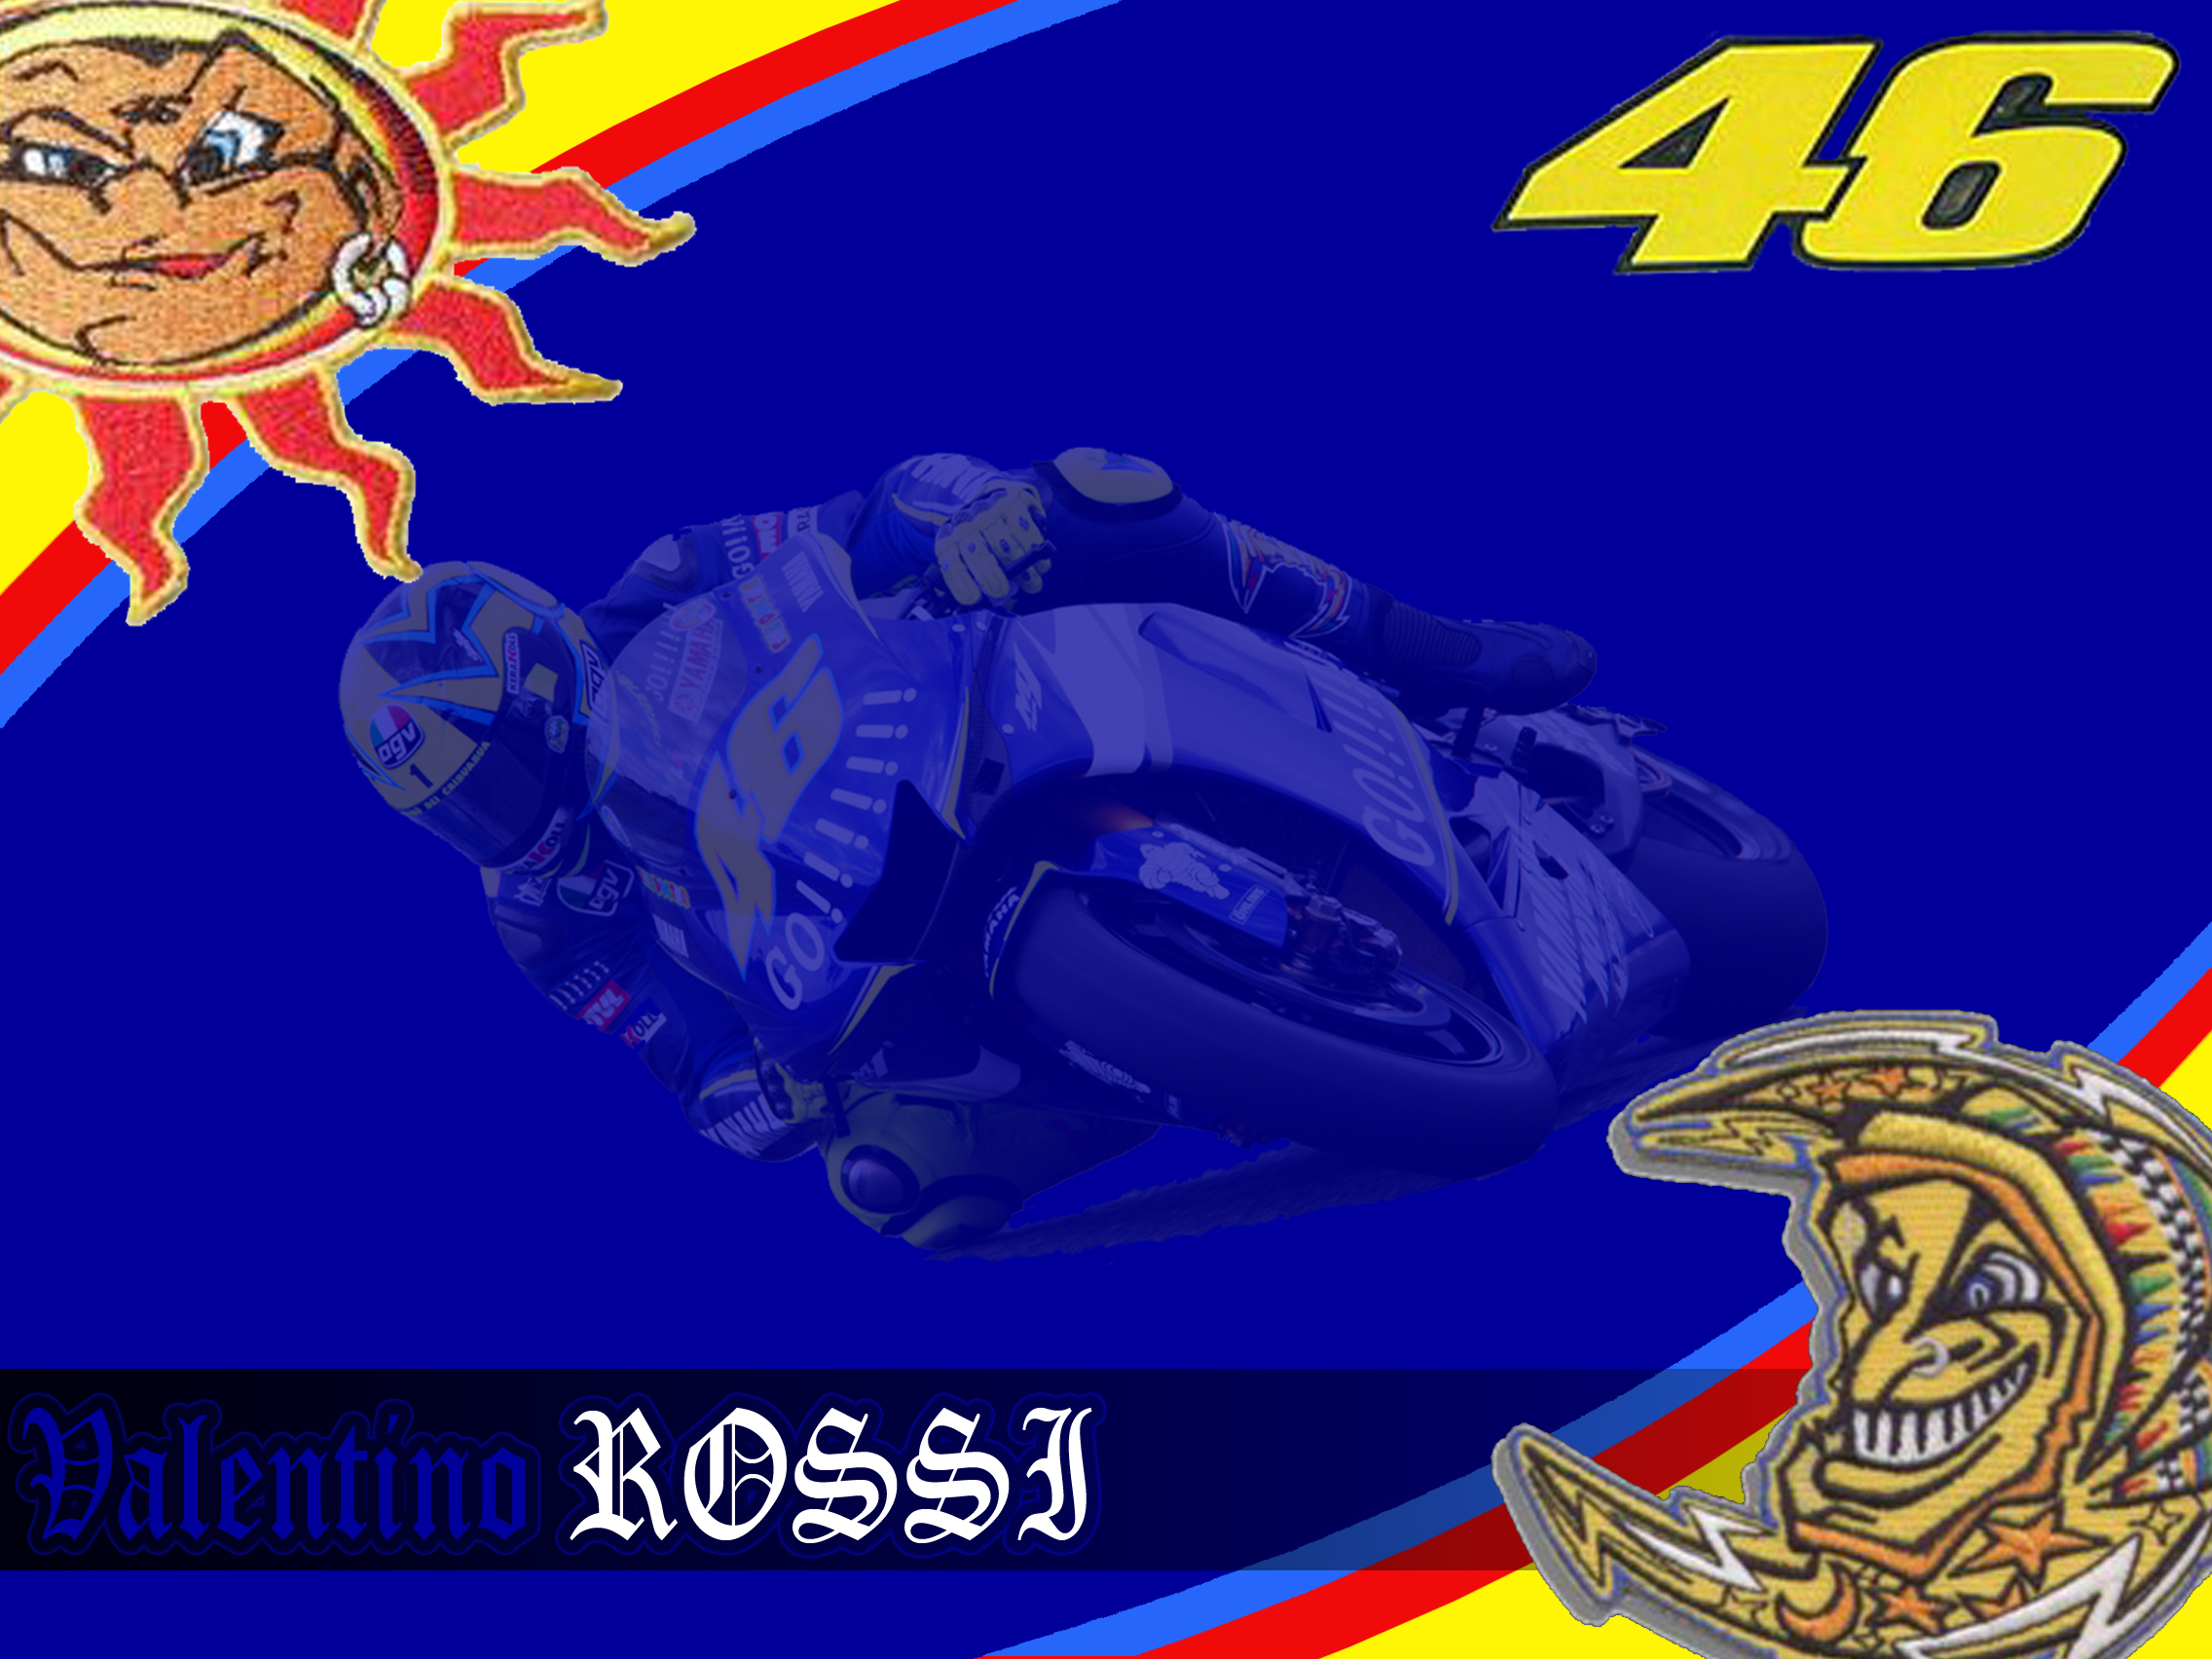 Valentino Rossi Wallpaper By Asher46 On DeviantArt